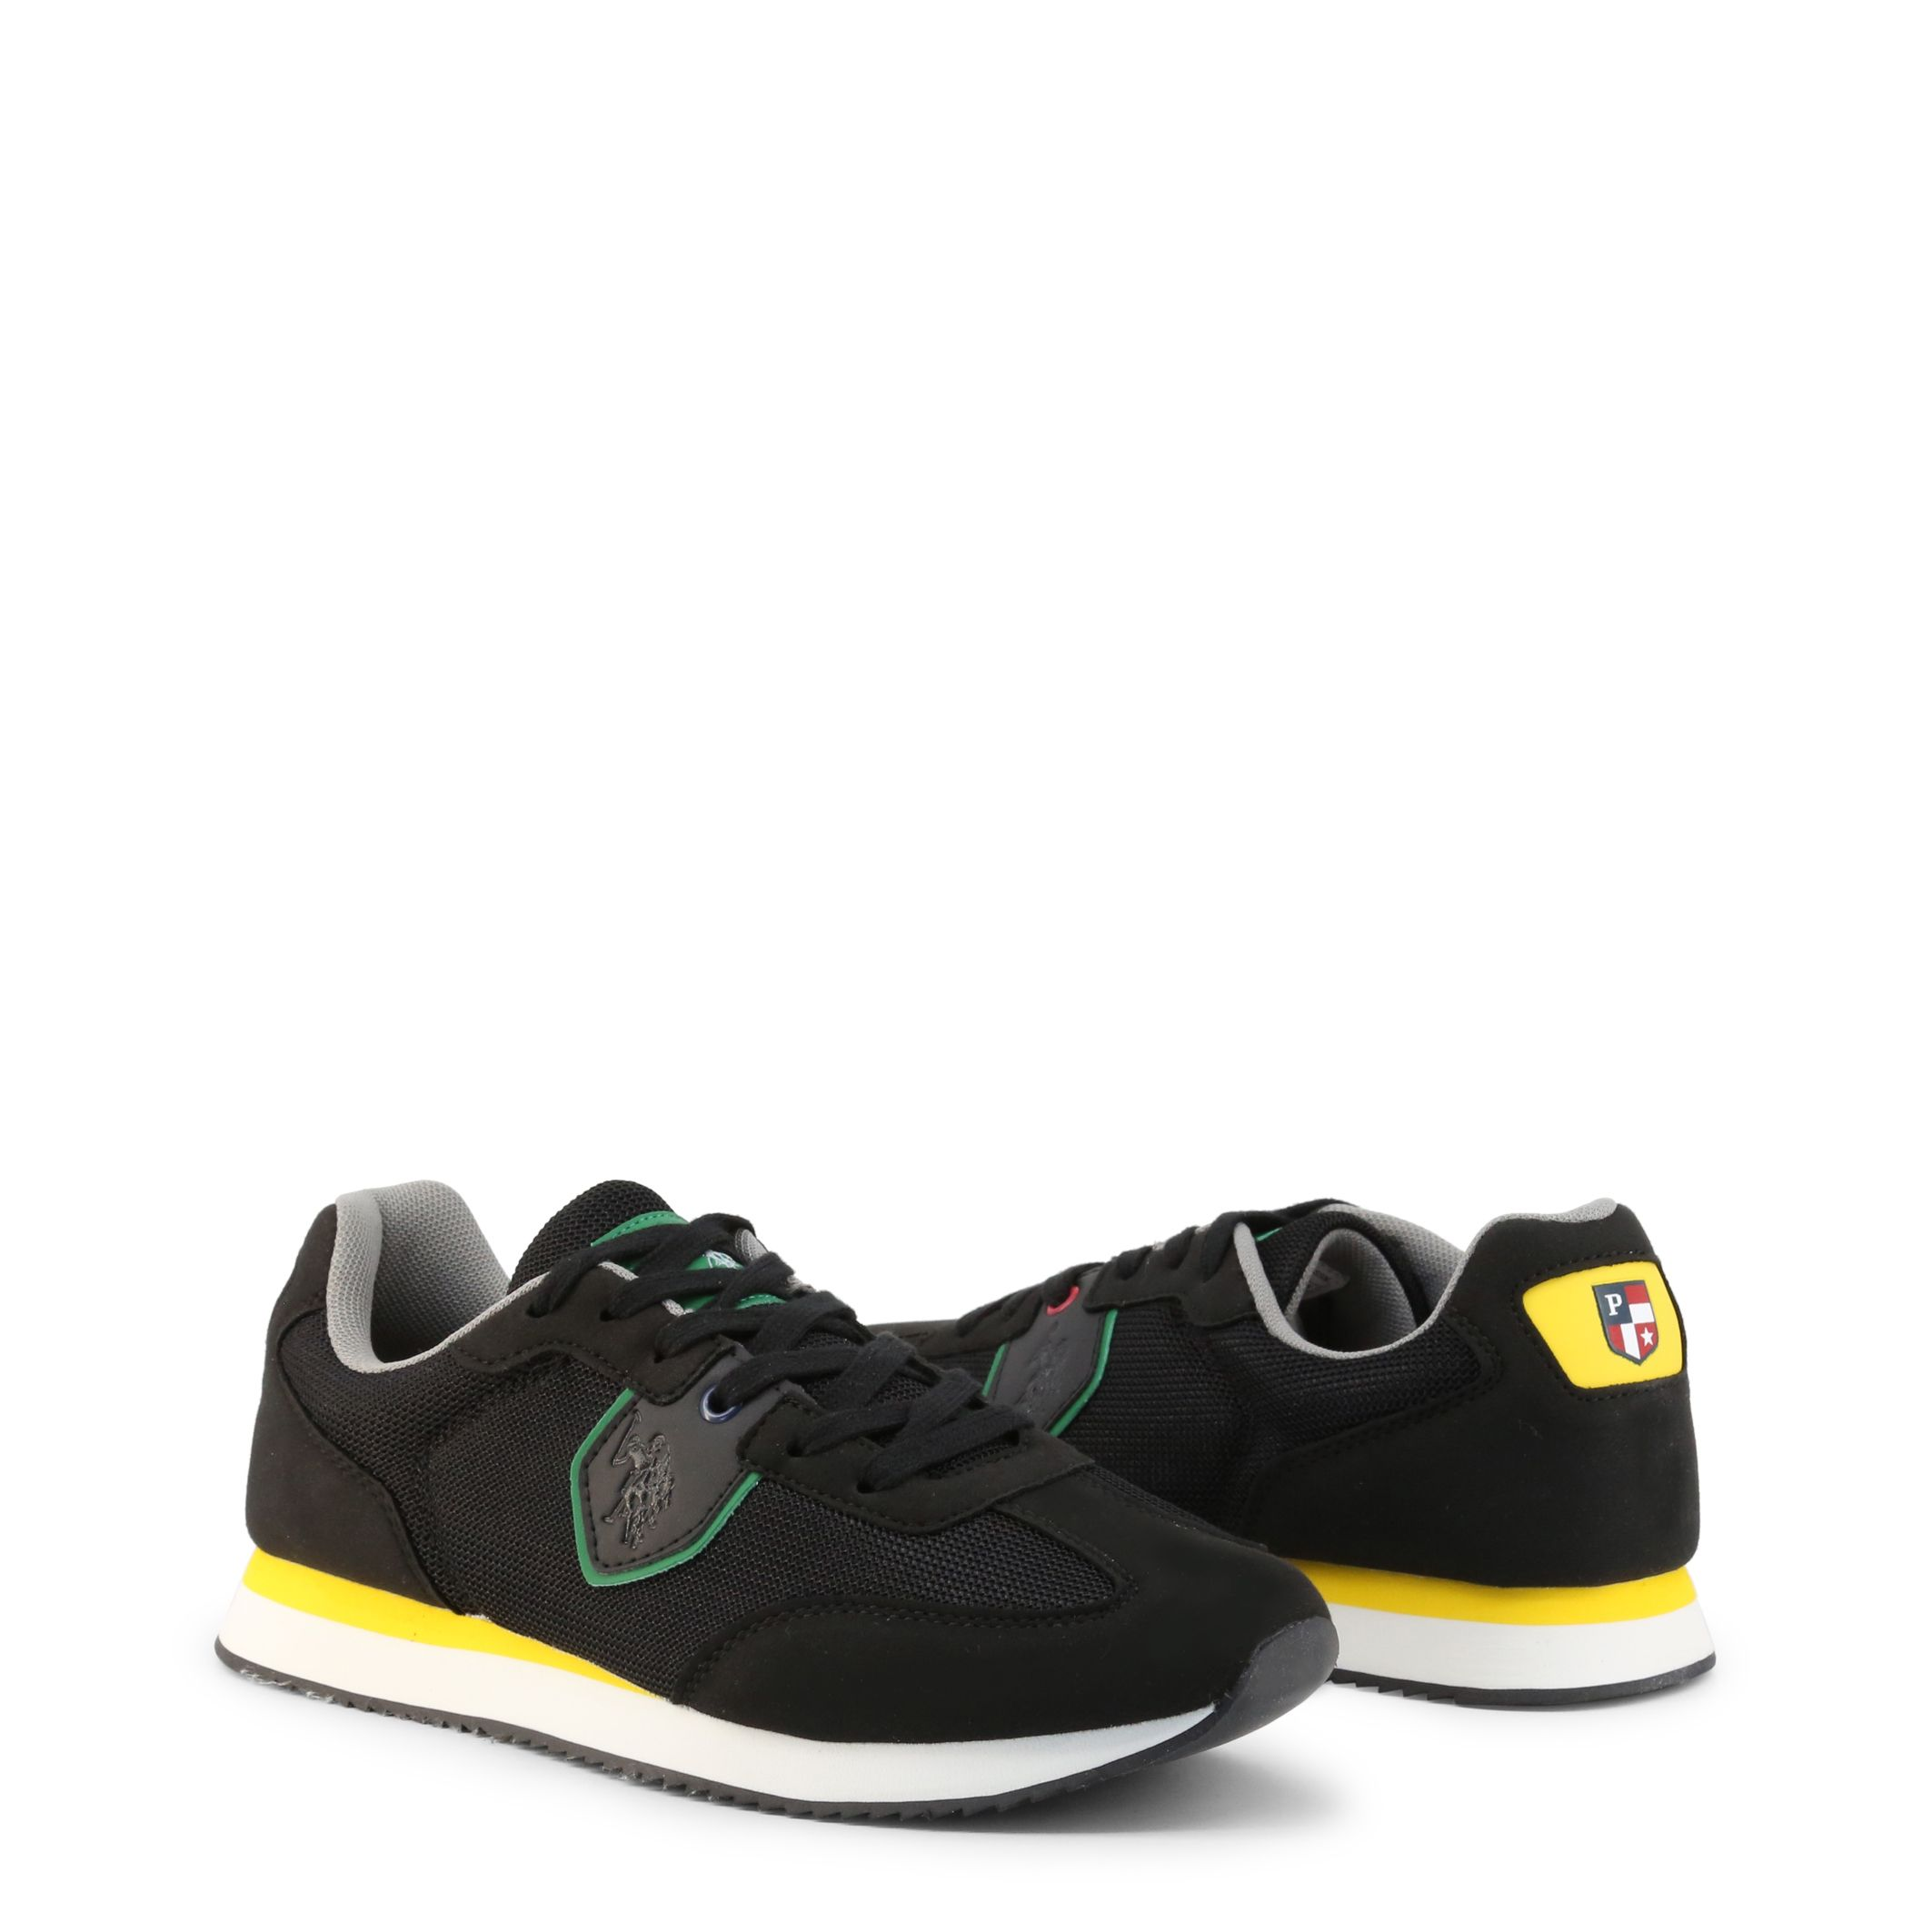 U.S. Polo Assn. - NOBIL4116S1_TH1 | You Fashion Outlet